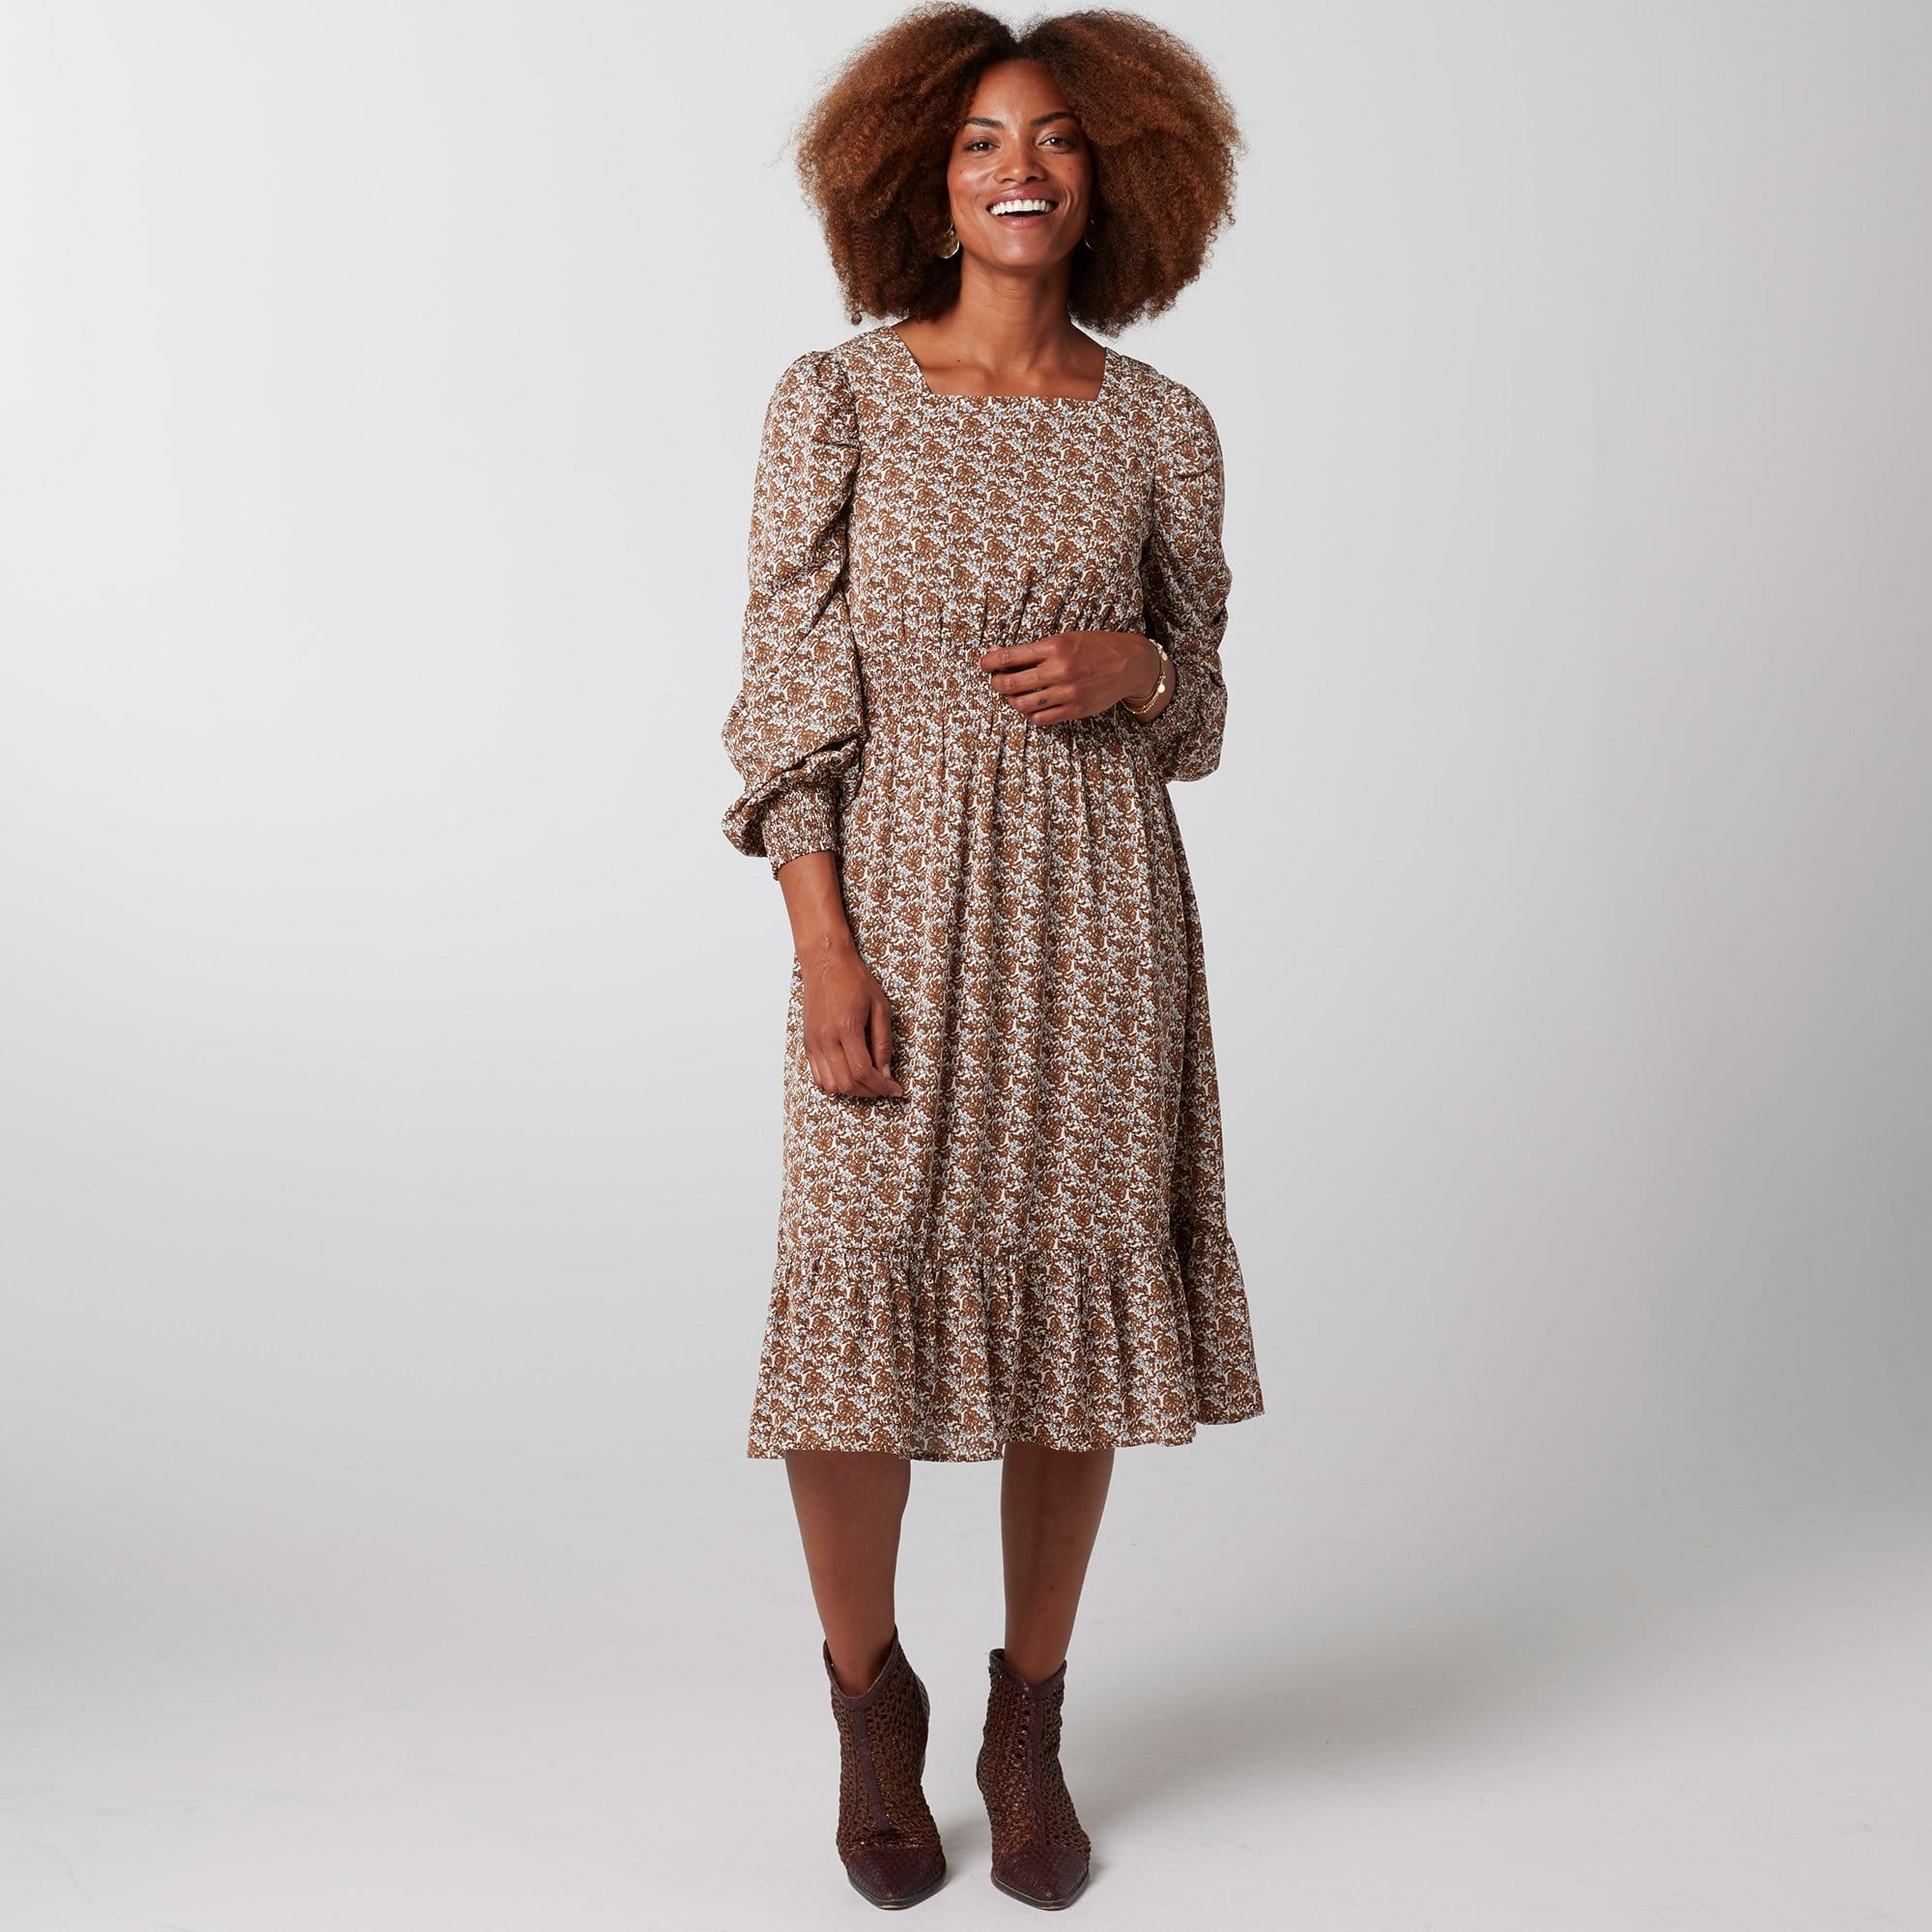 Square Neck Smocked Dress